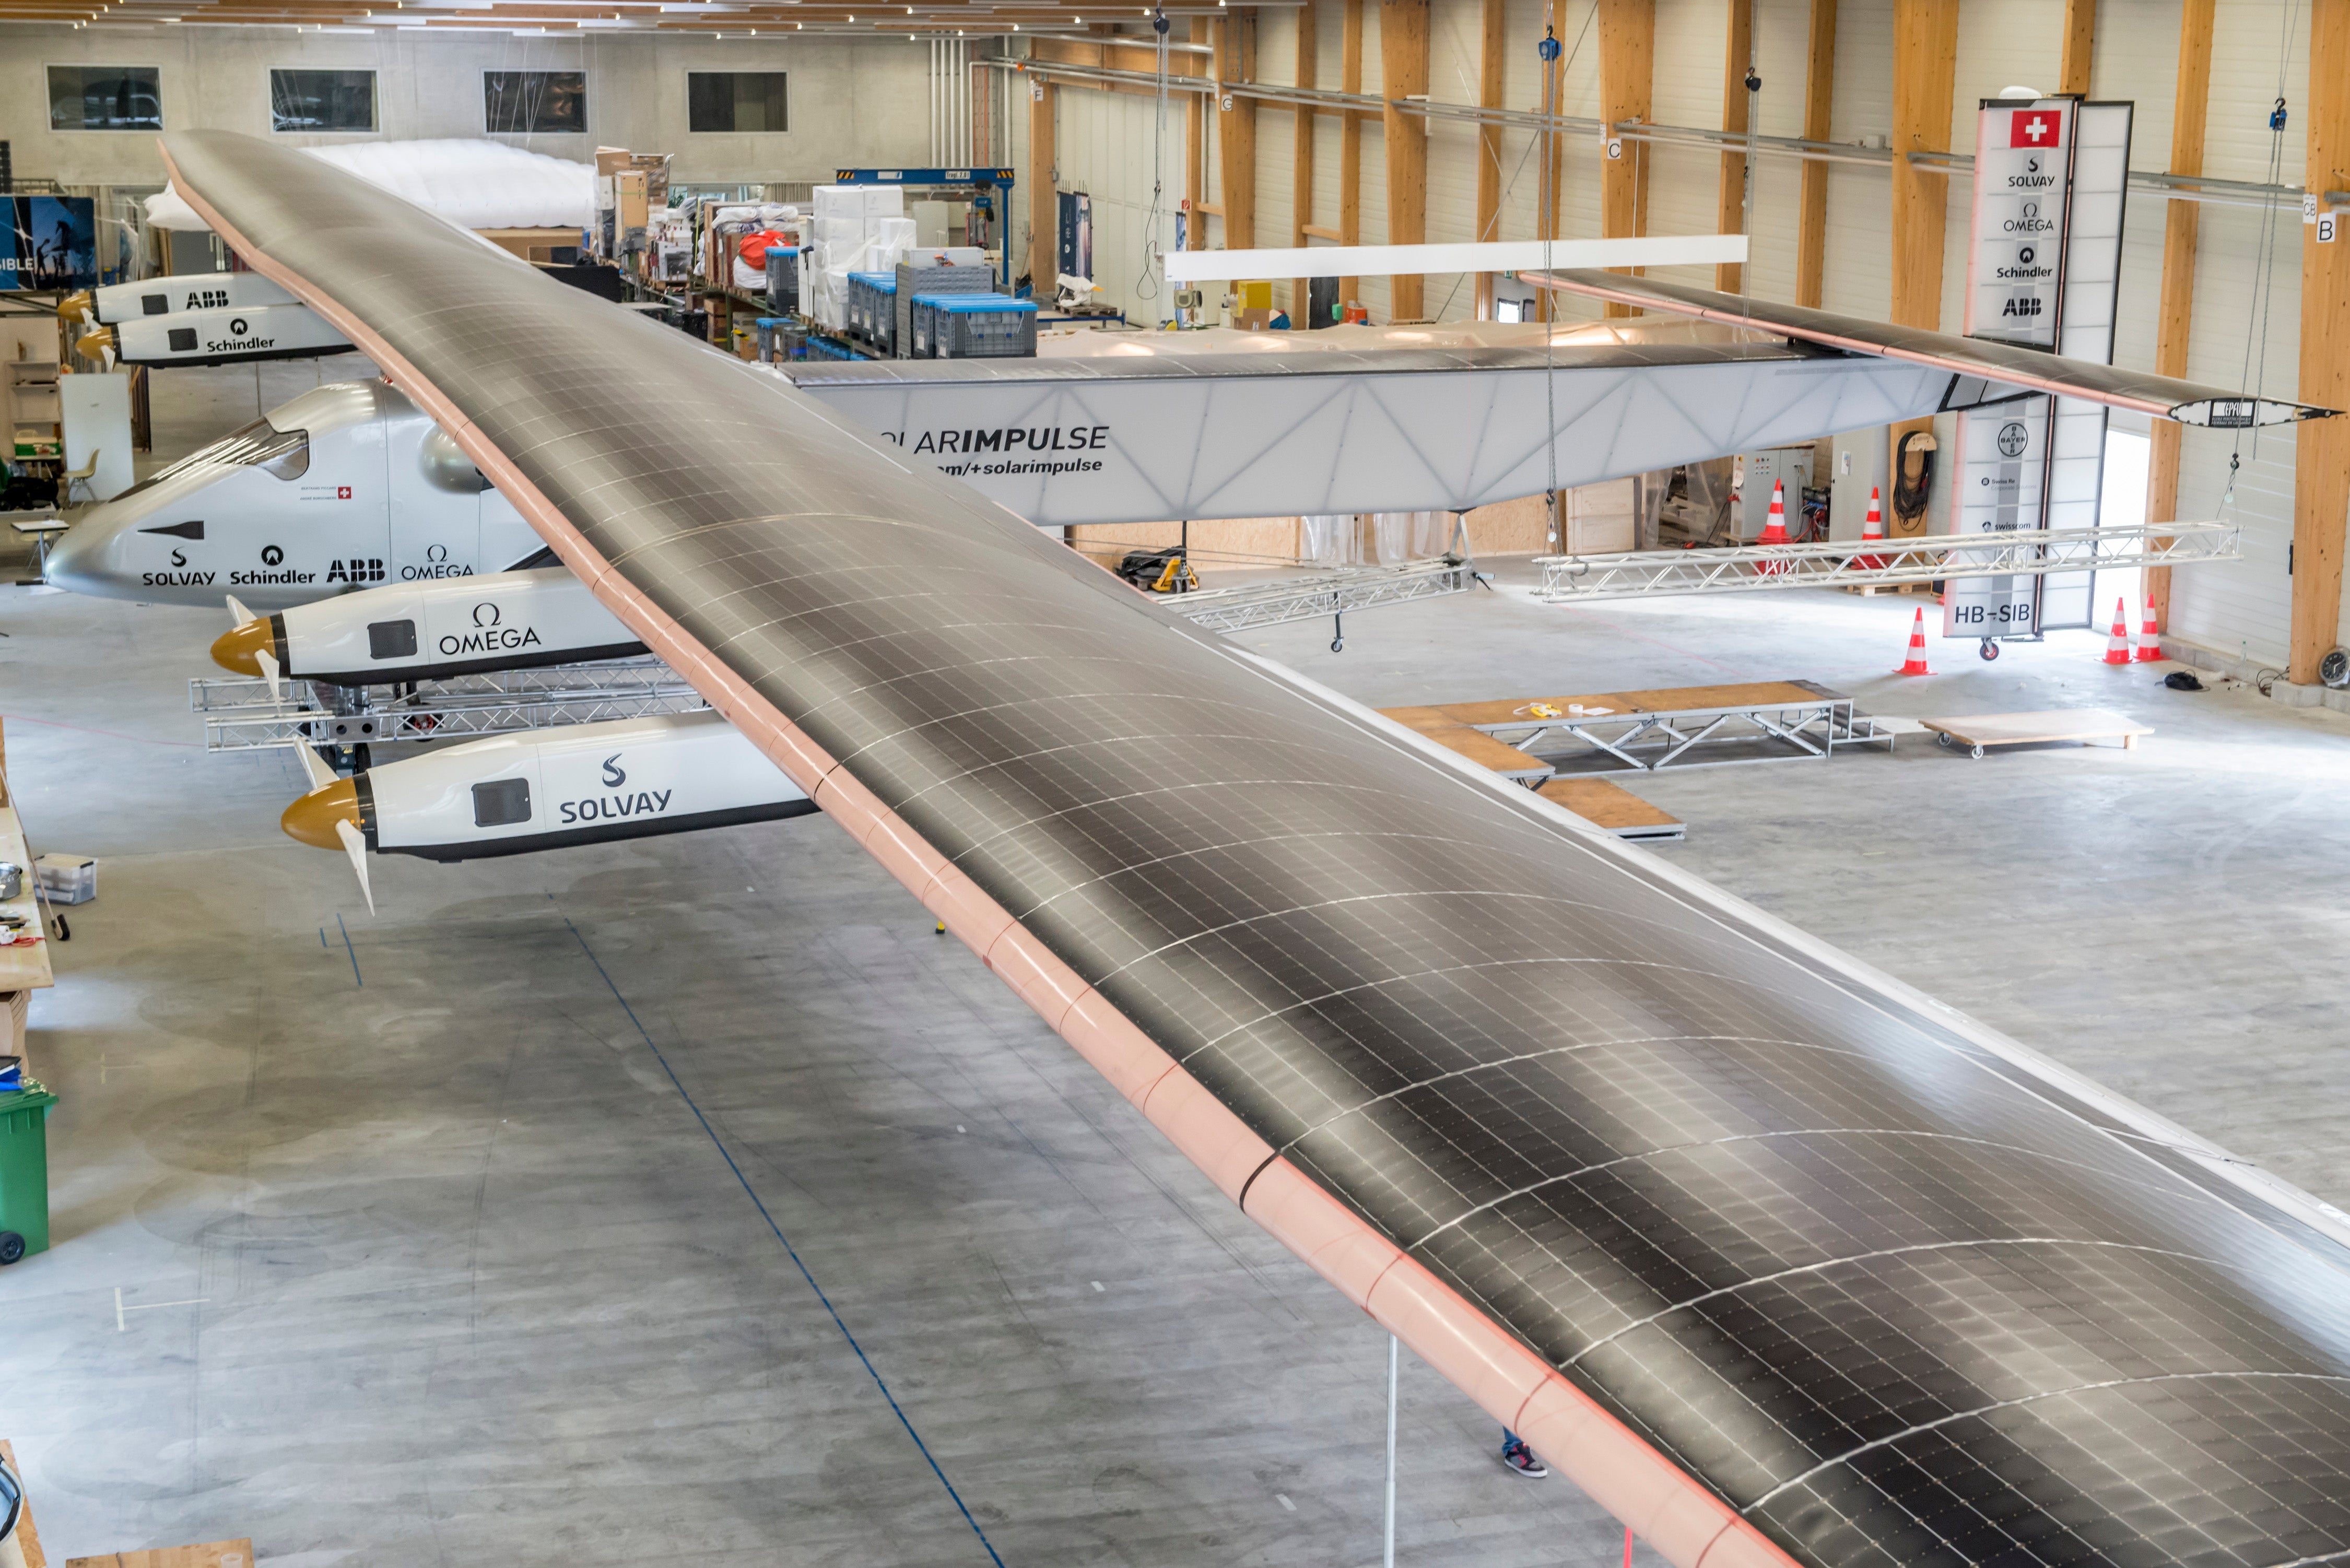 This Plane Will Circle the World Using Only the Power of the Sun